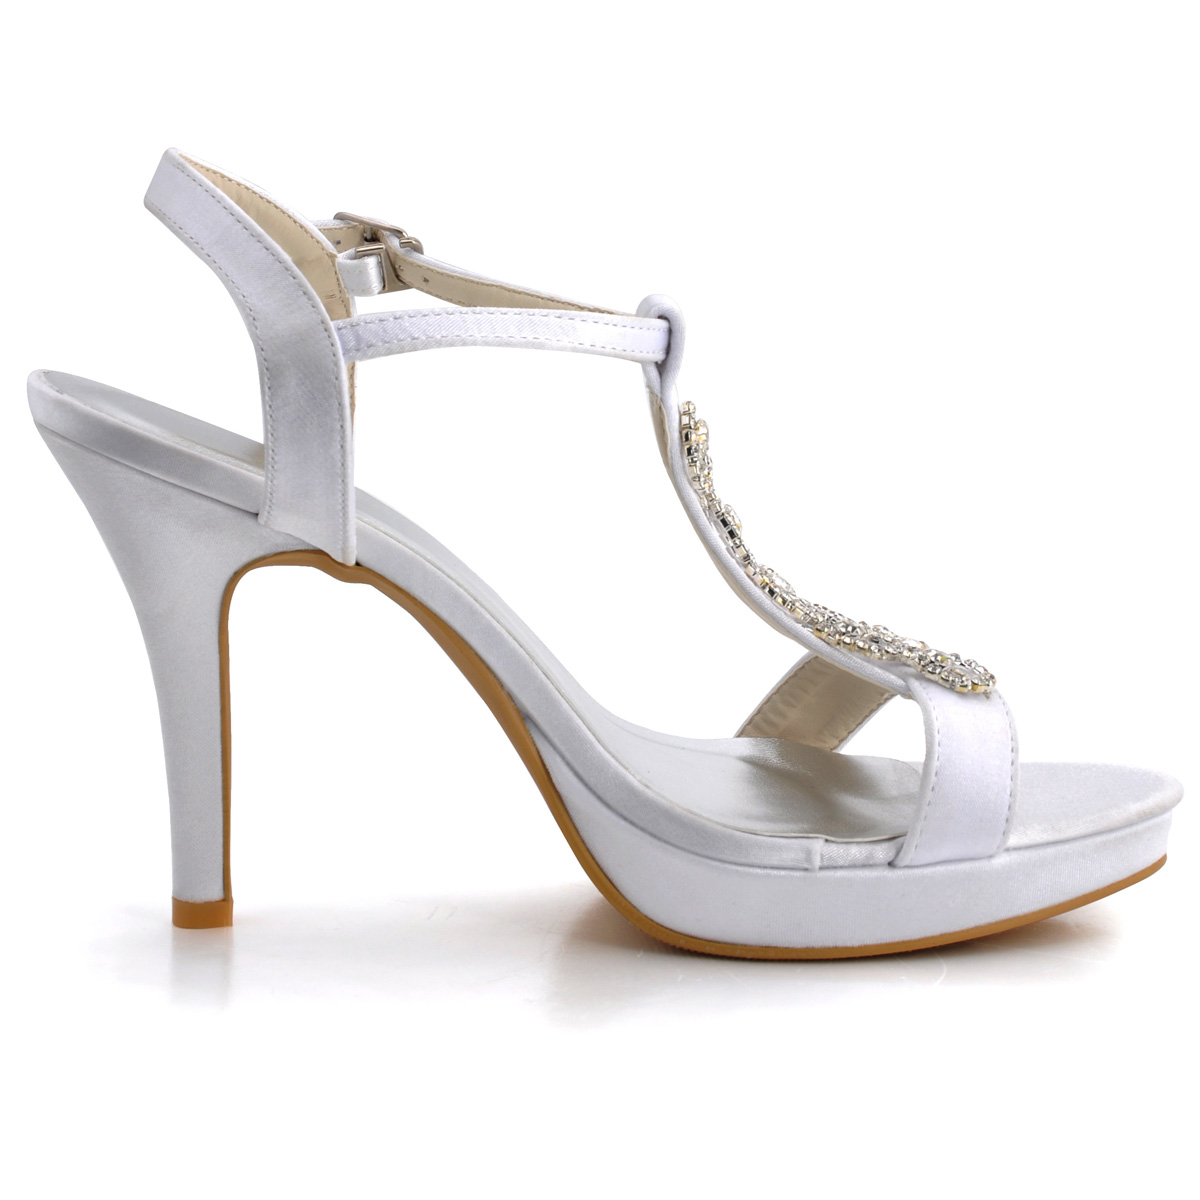 fait main impermeables personnalise chaussures a talons hauts de mariage de satin blanc diamant. Black Bedroom Furniture Sets. Home Design Ideas